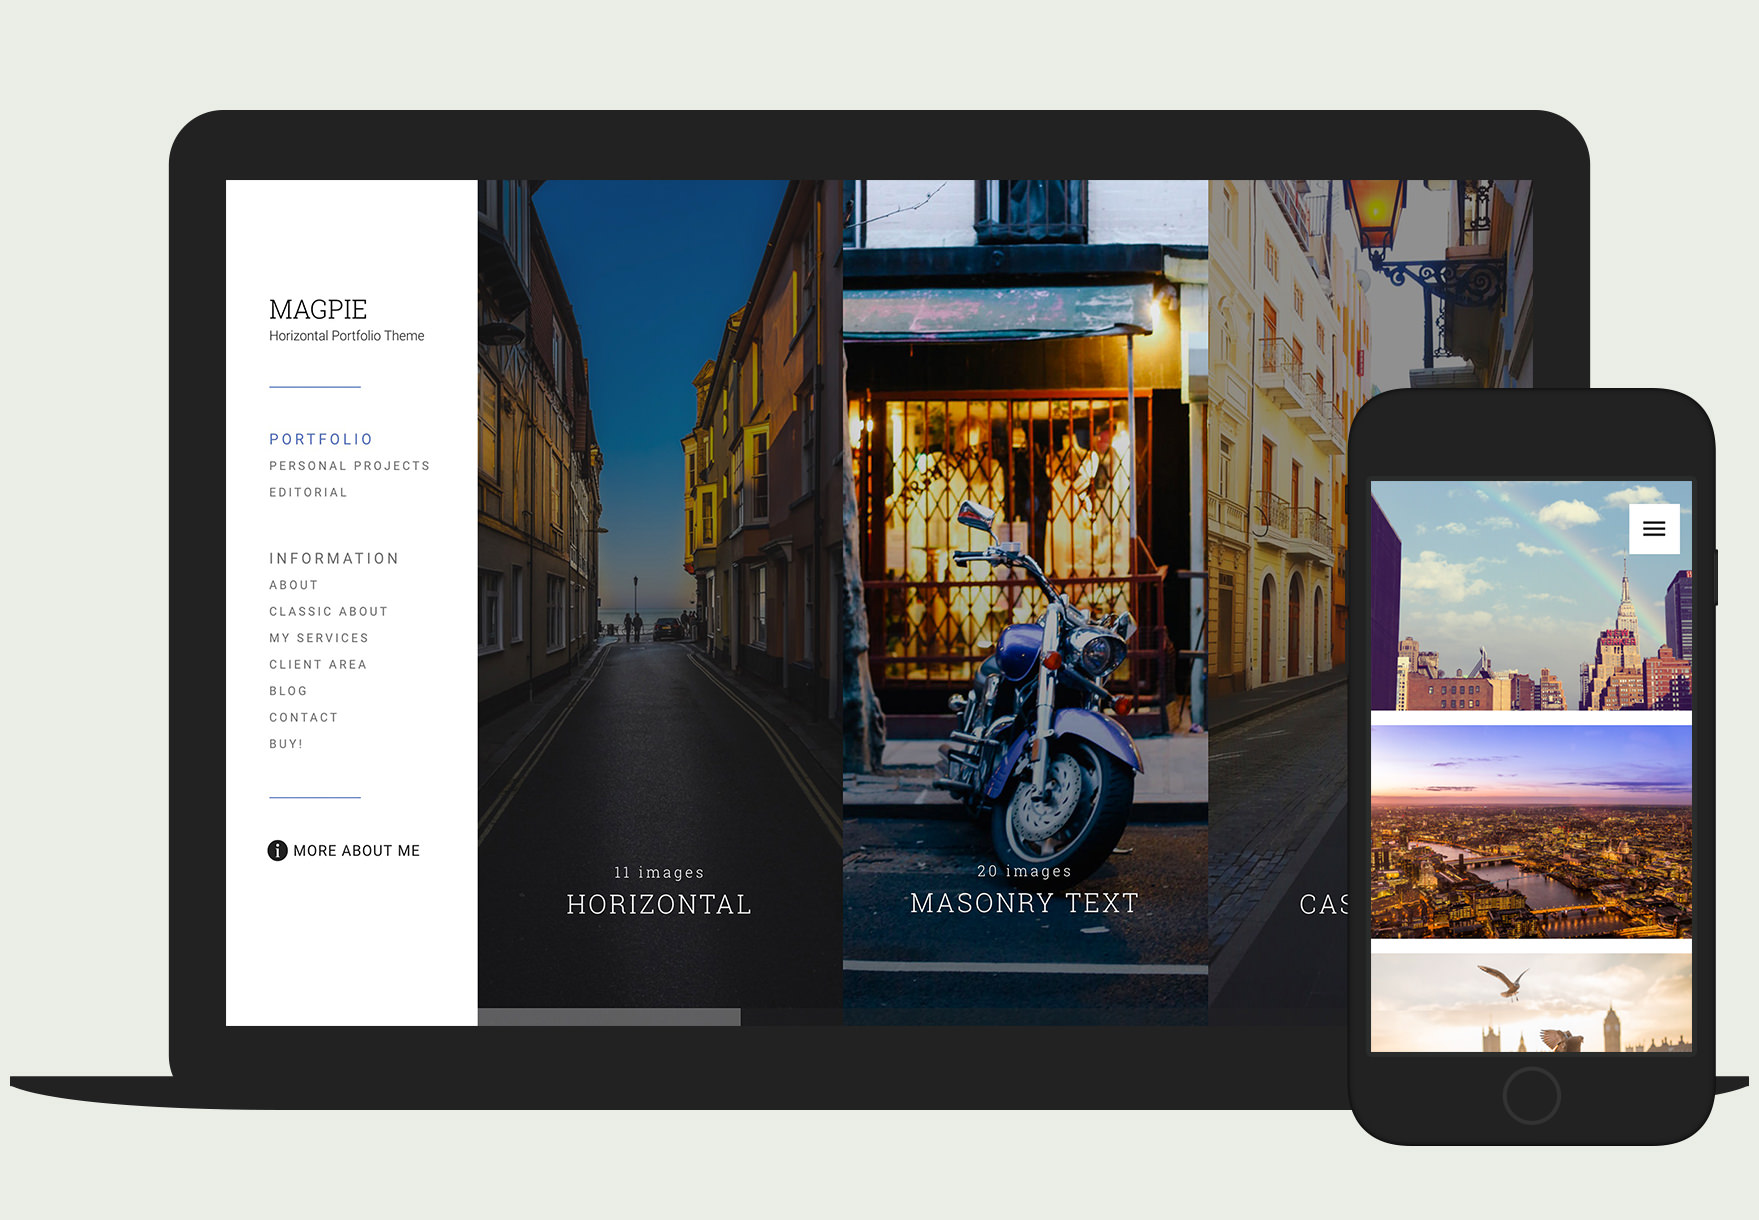 Responsive, horizontal photography WordPress theme called Magpie